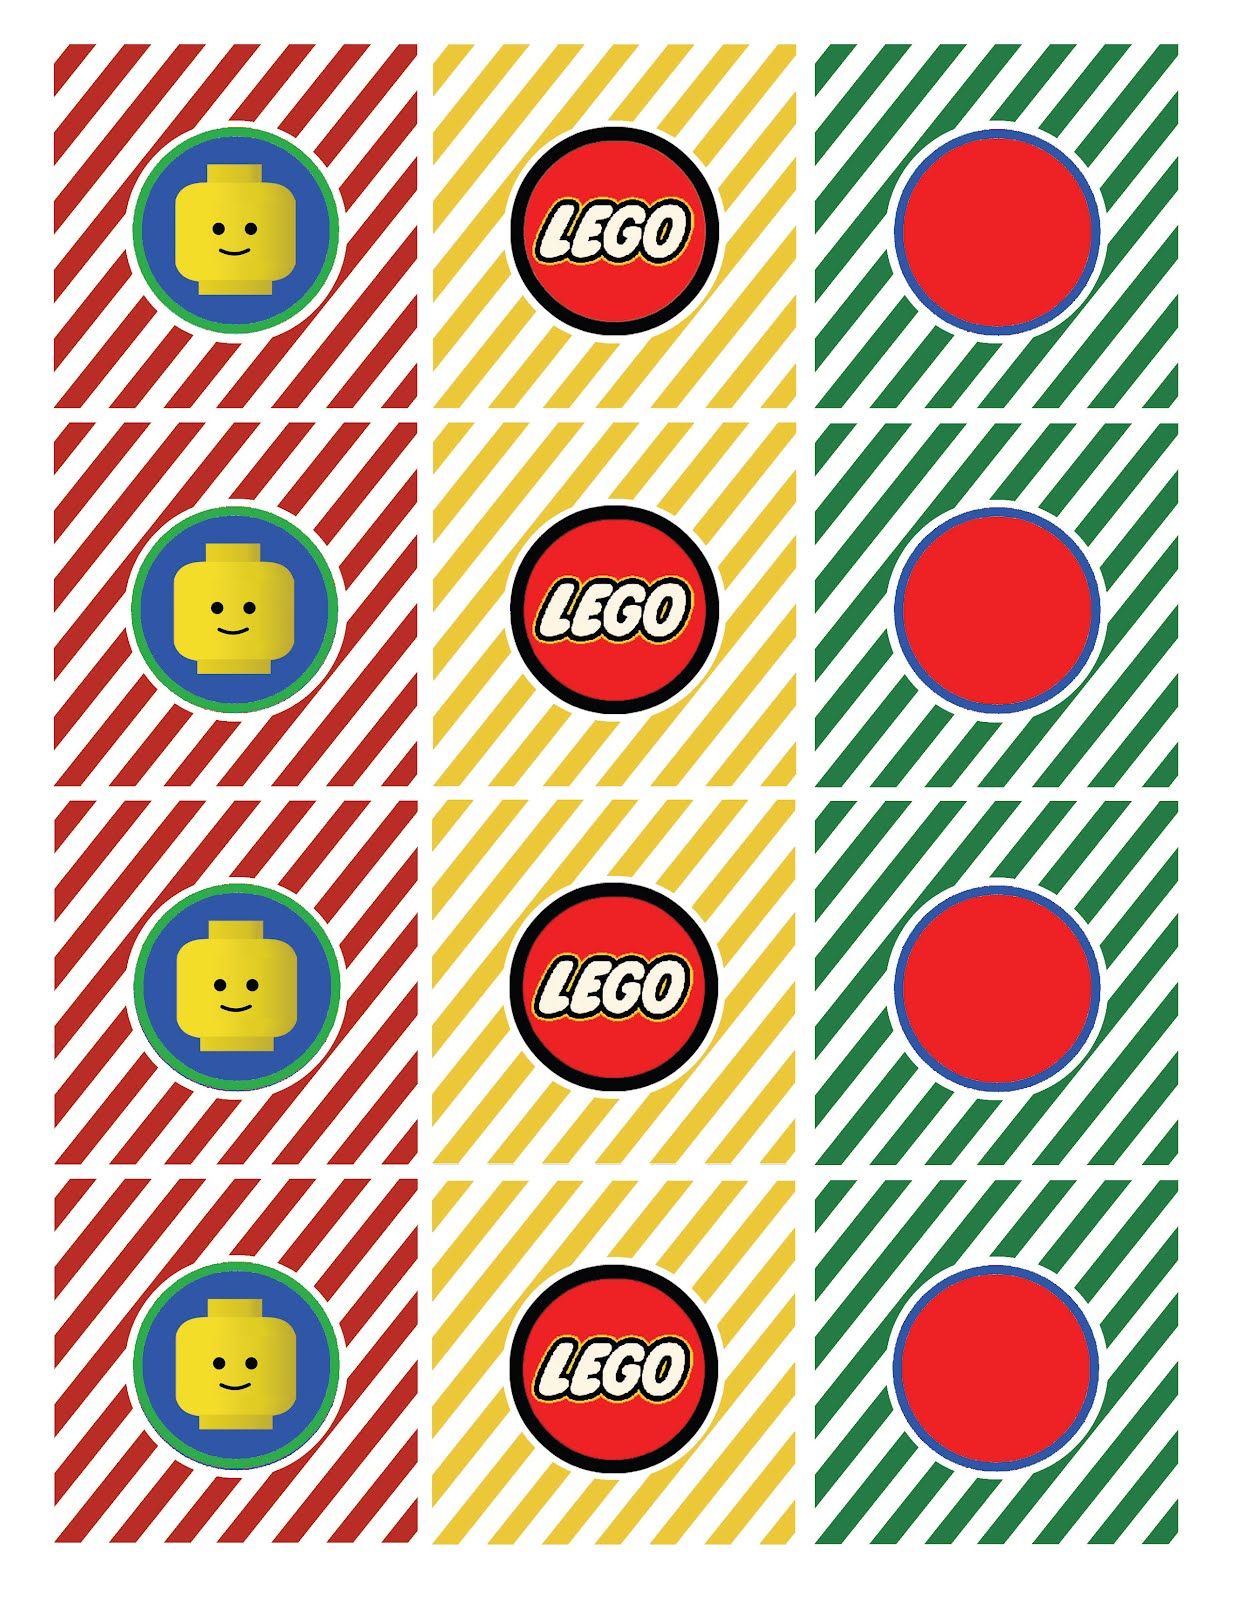 Lego Inspired Whatpoppelinesees Classic Lego Inspired Printable